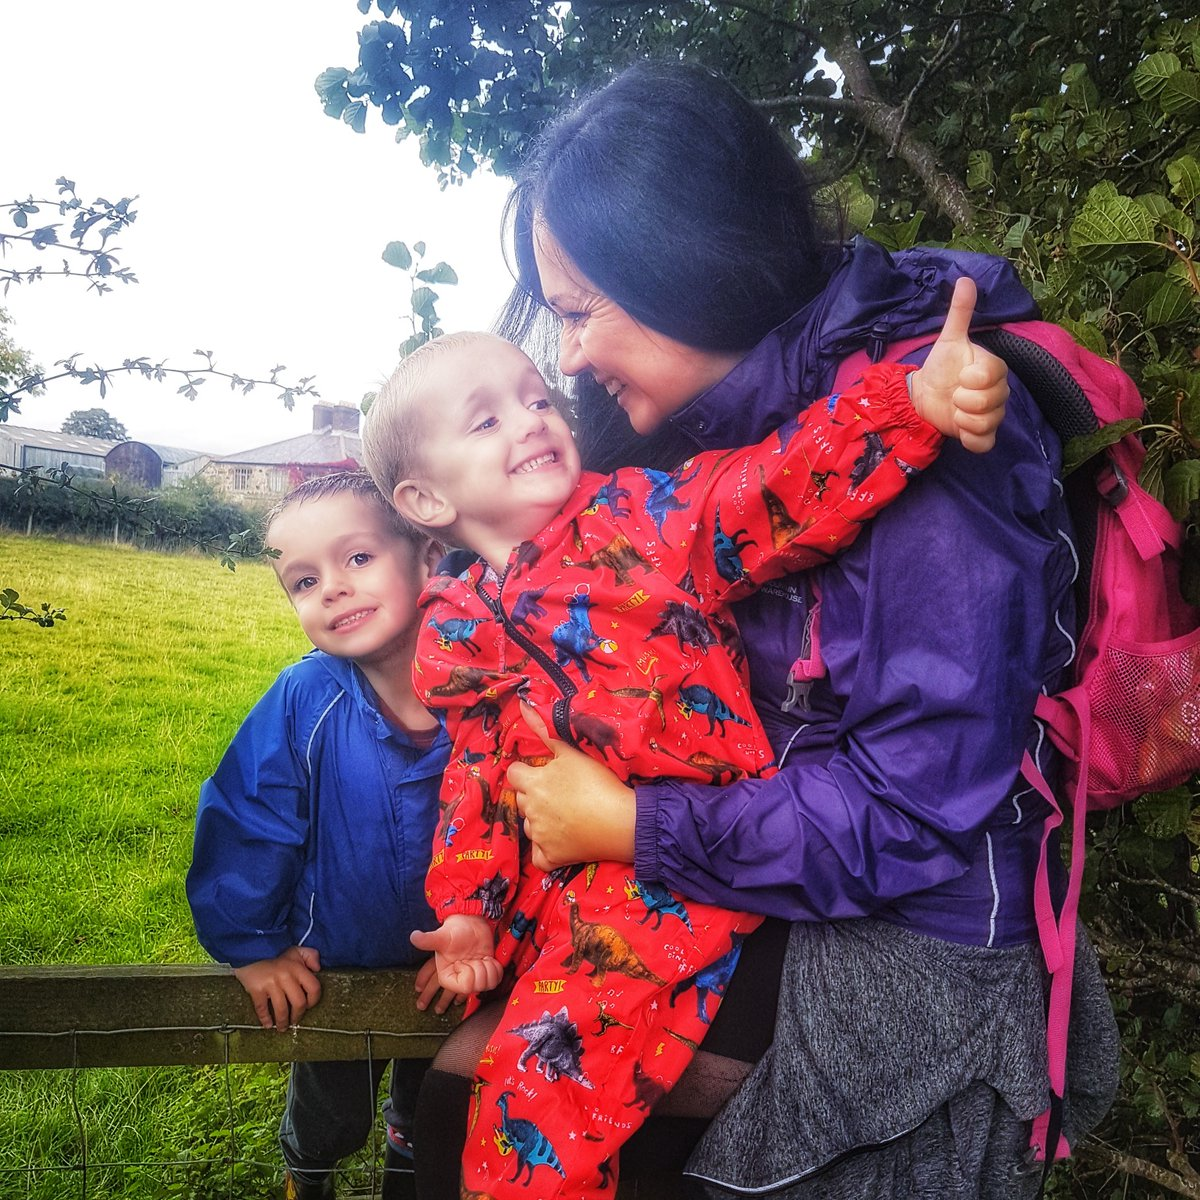 The thoroughly modern mummy: why there is no such thing as work/life balance http://dld.bz/hQ8HM #worklifebalance #worklifeblend #modernmummypic.twitter.com/rZgtctMsKm